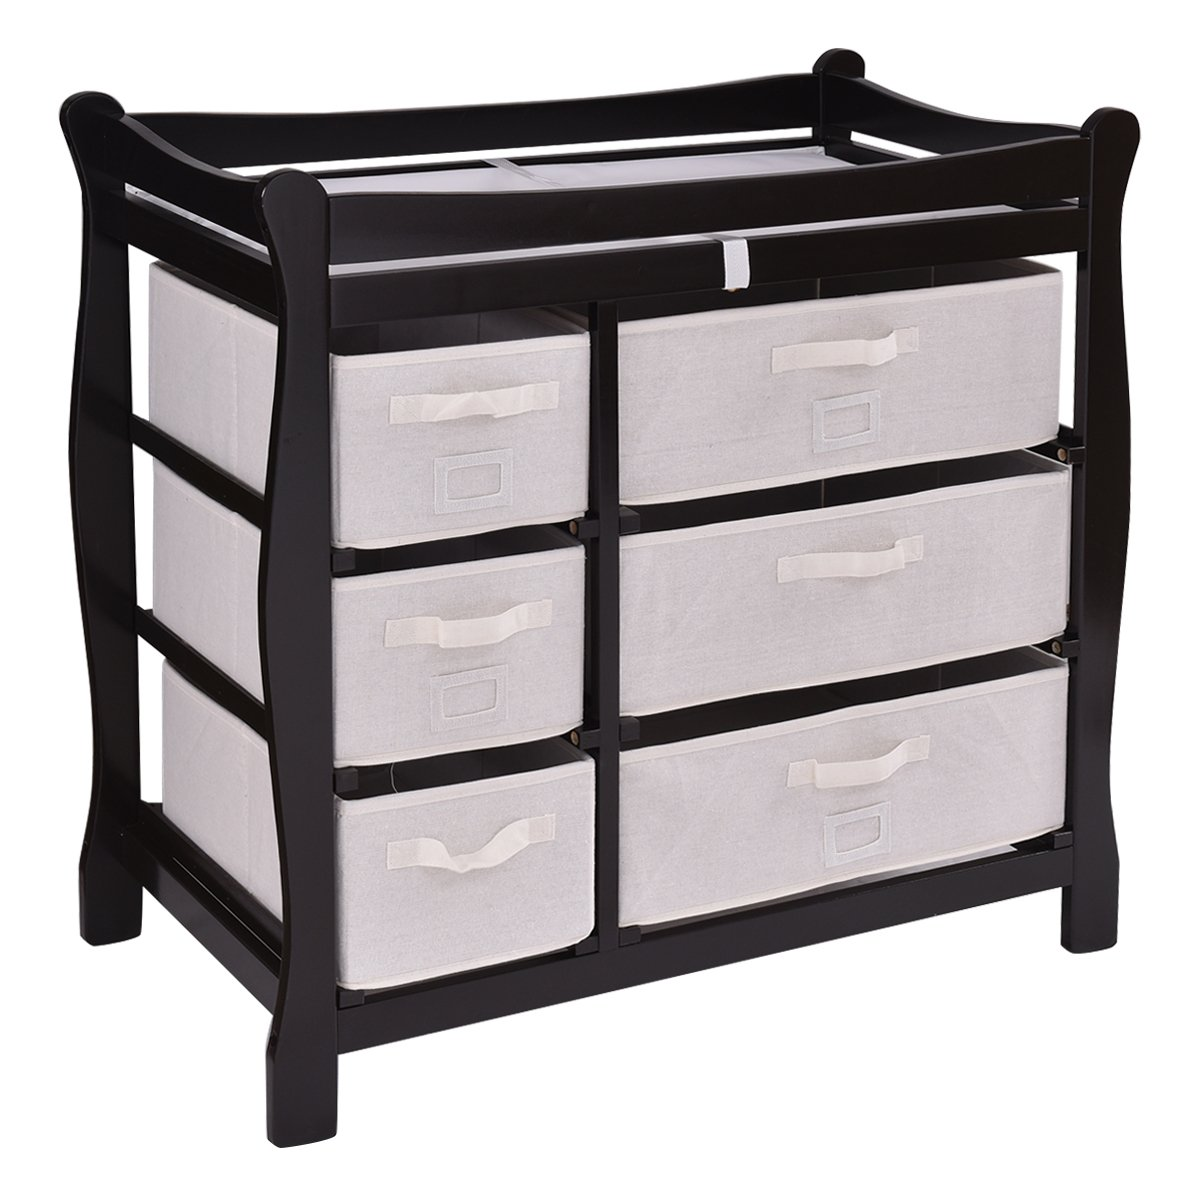 amazoncom  costzon baby changing table infant diaper nursery  - amazoncom  costzon baby changing table infant diaper nursery station wbasket storage drawers (coffee)  baby